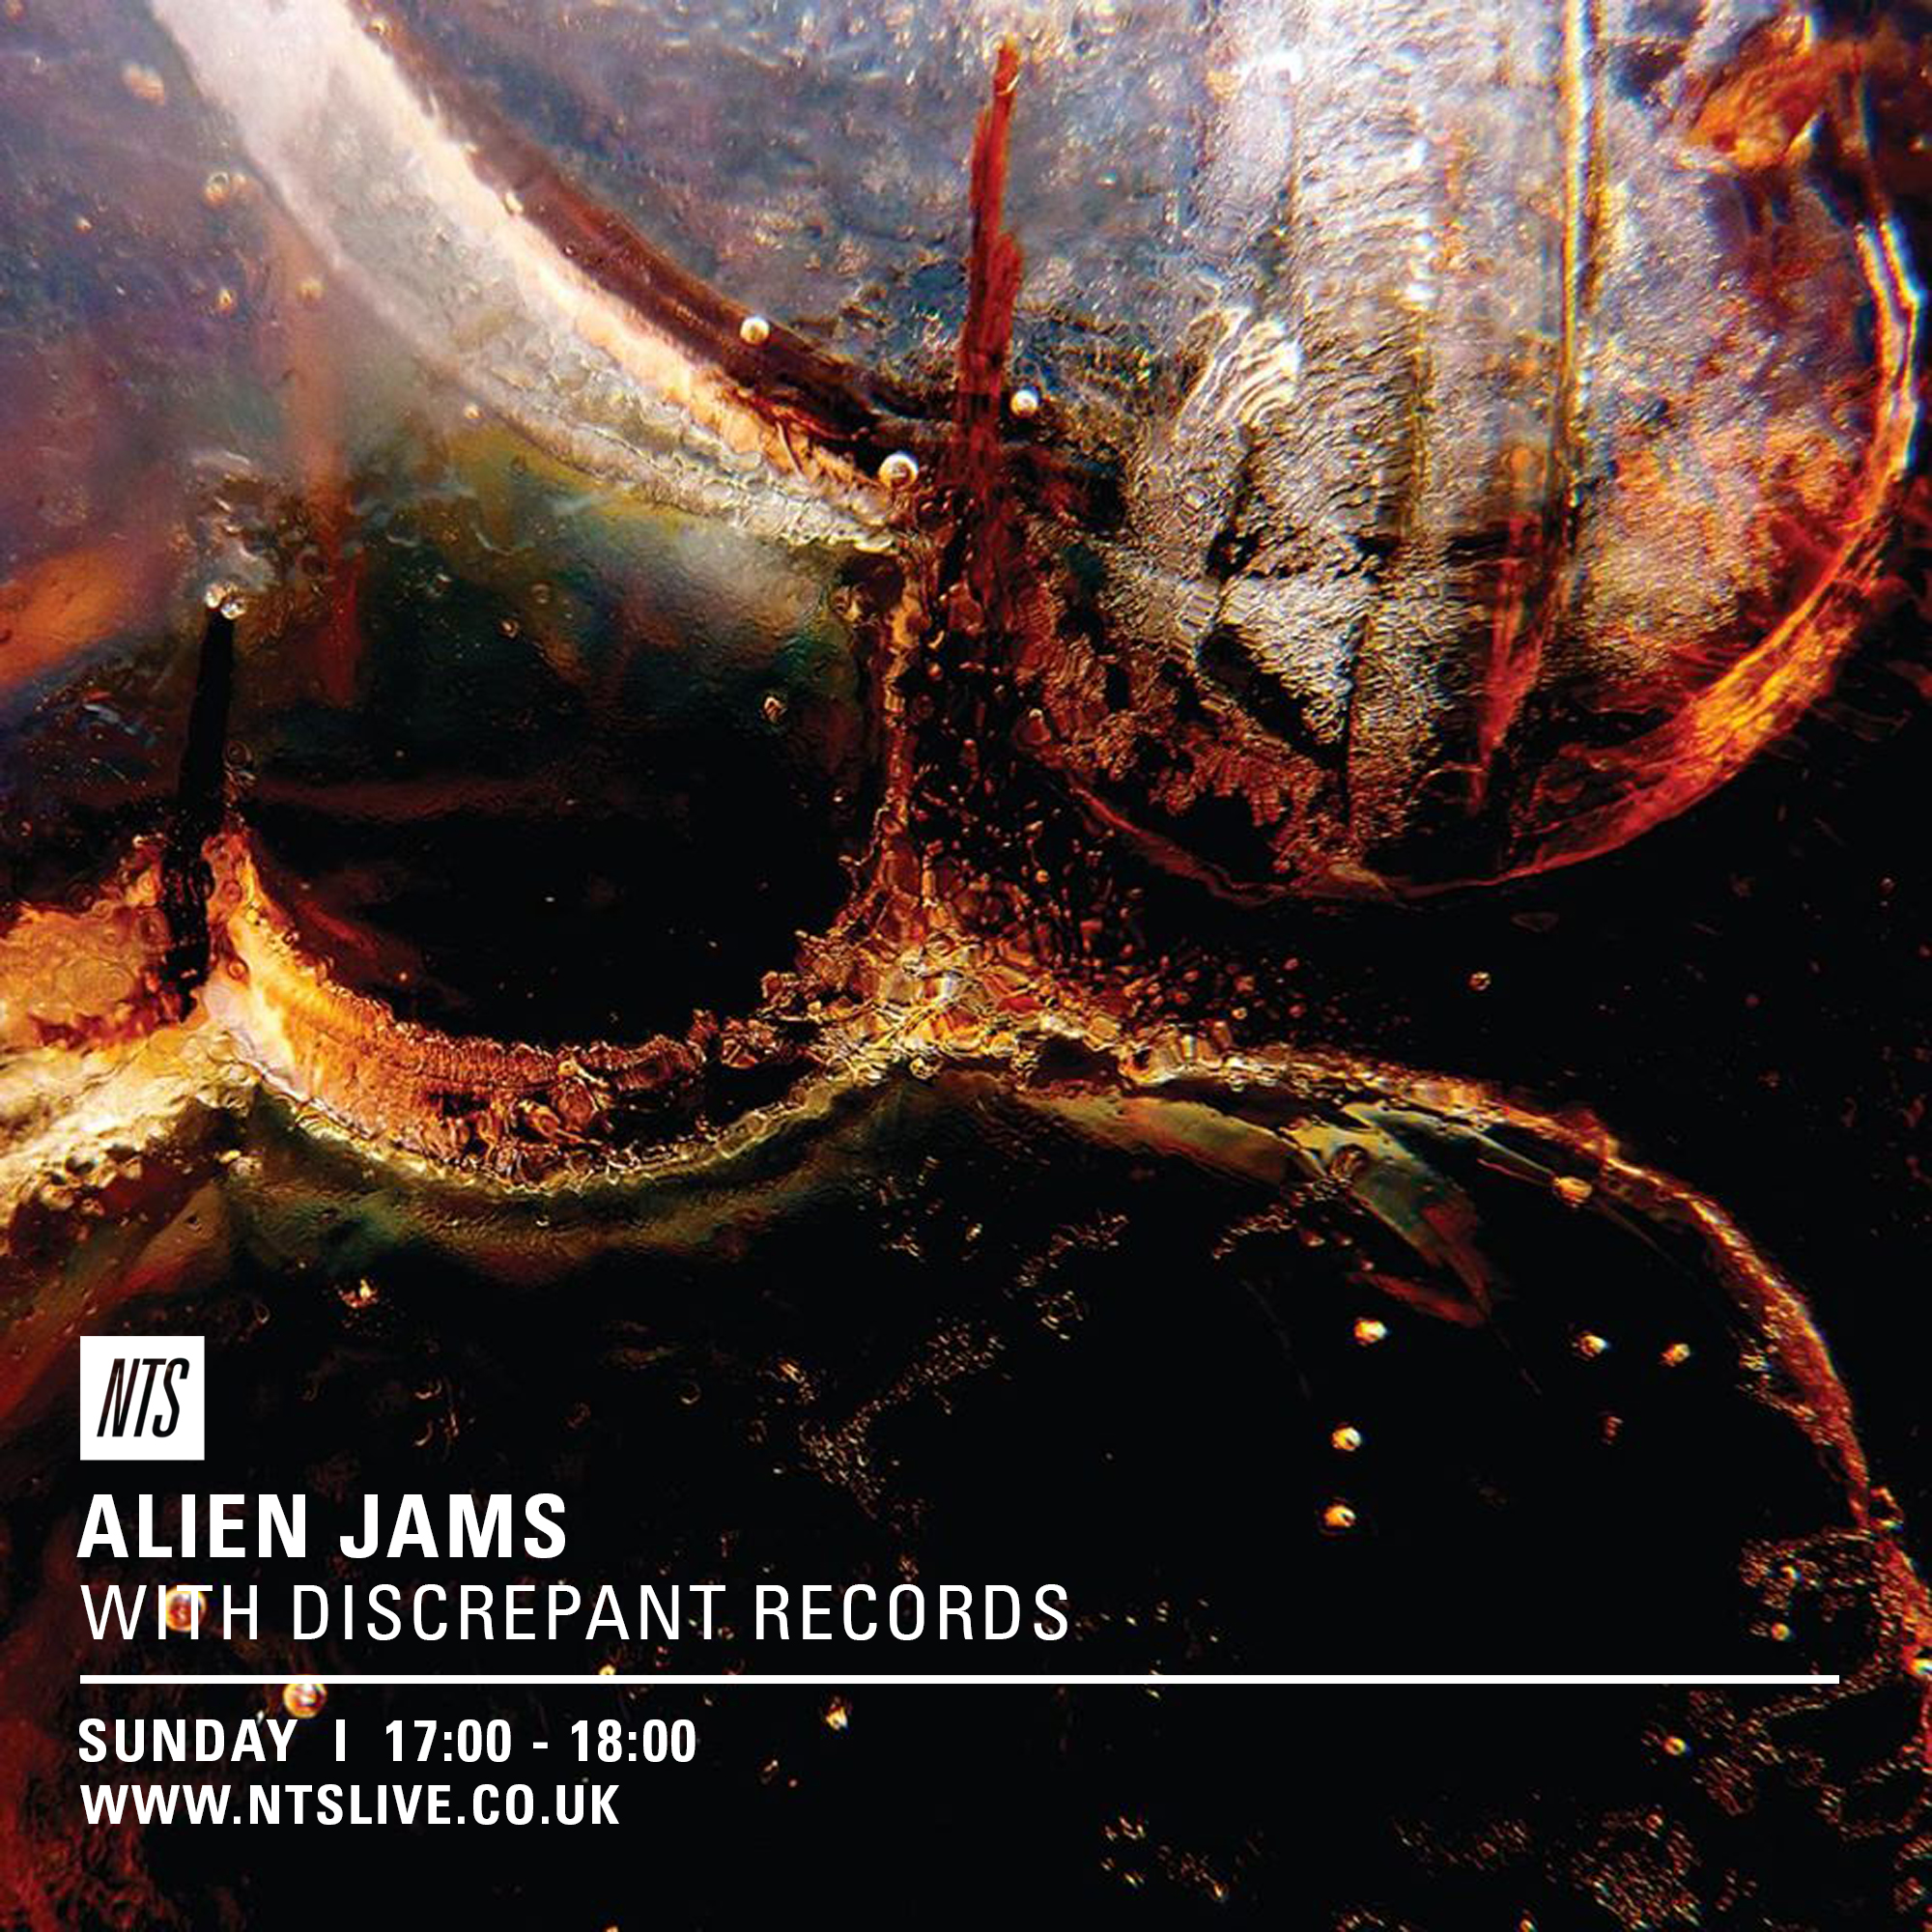 Alien Jams with Discrepant